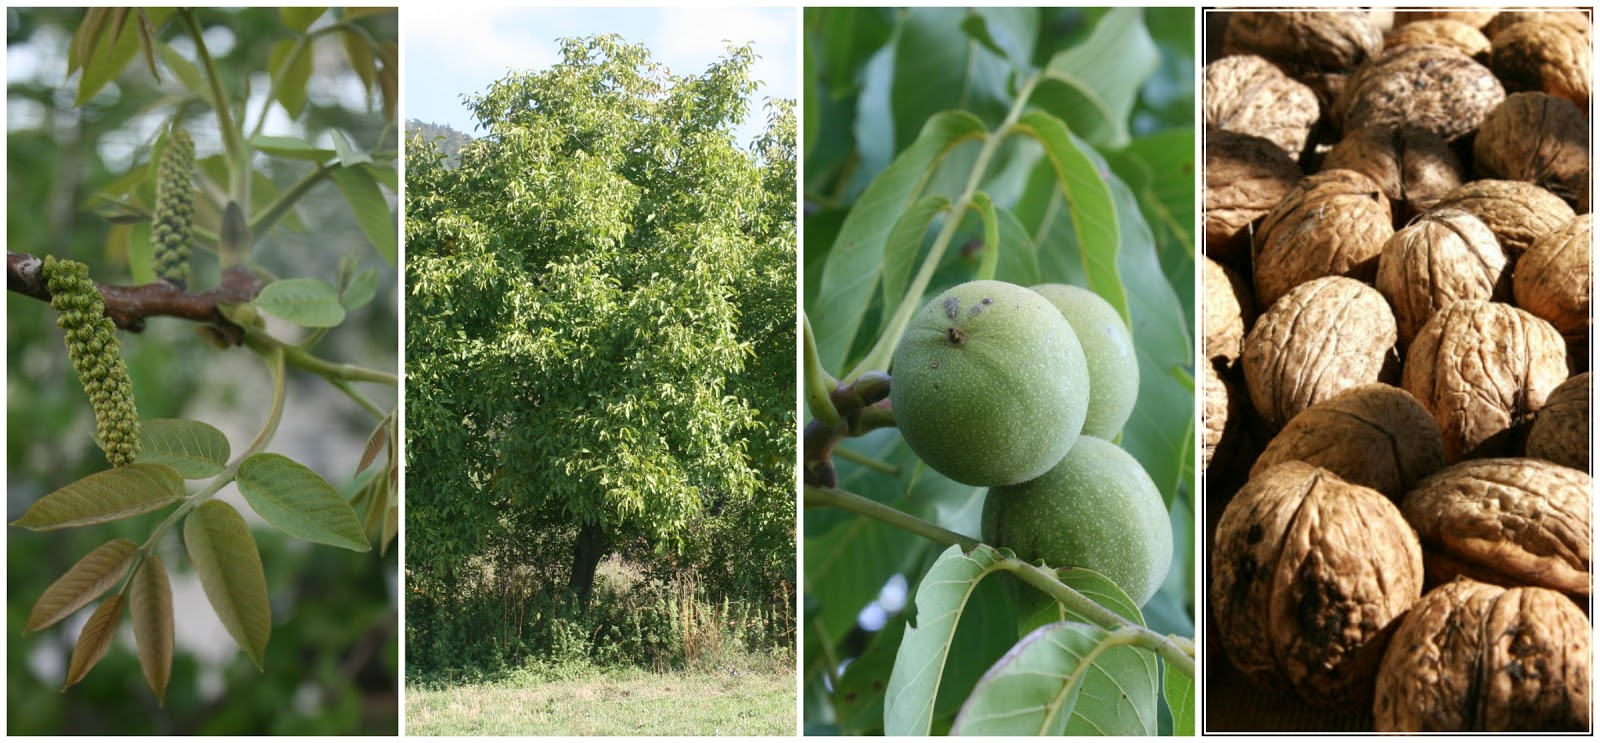 Why You Should Grow Walnuts (Juglans regia) | Permaculture magazine